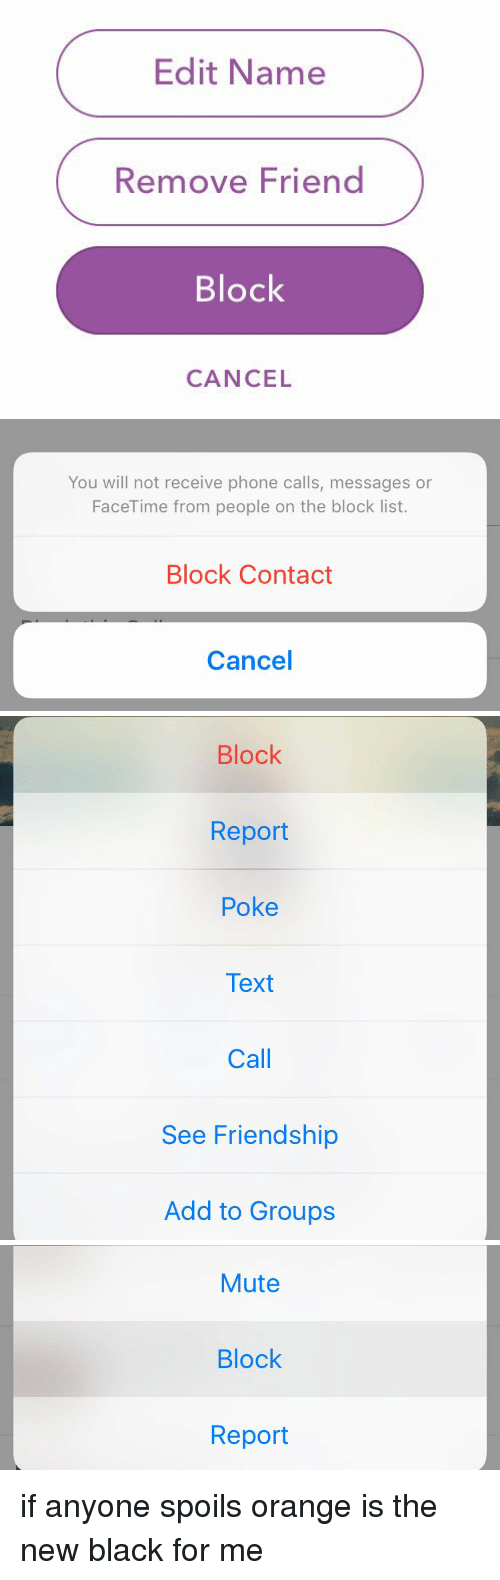 Facetime Friends And Phone Edit Name Remove Friend Block Cancel You Will Not